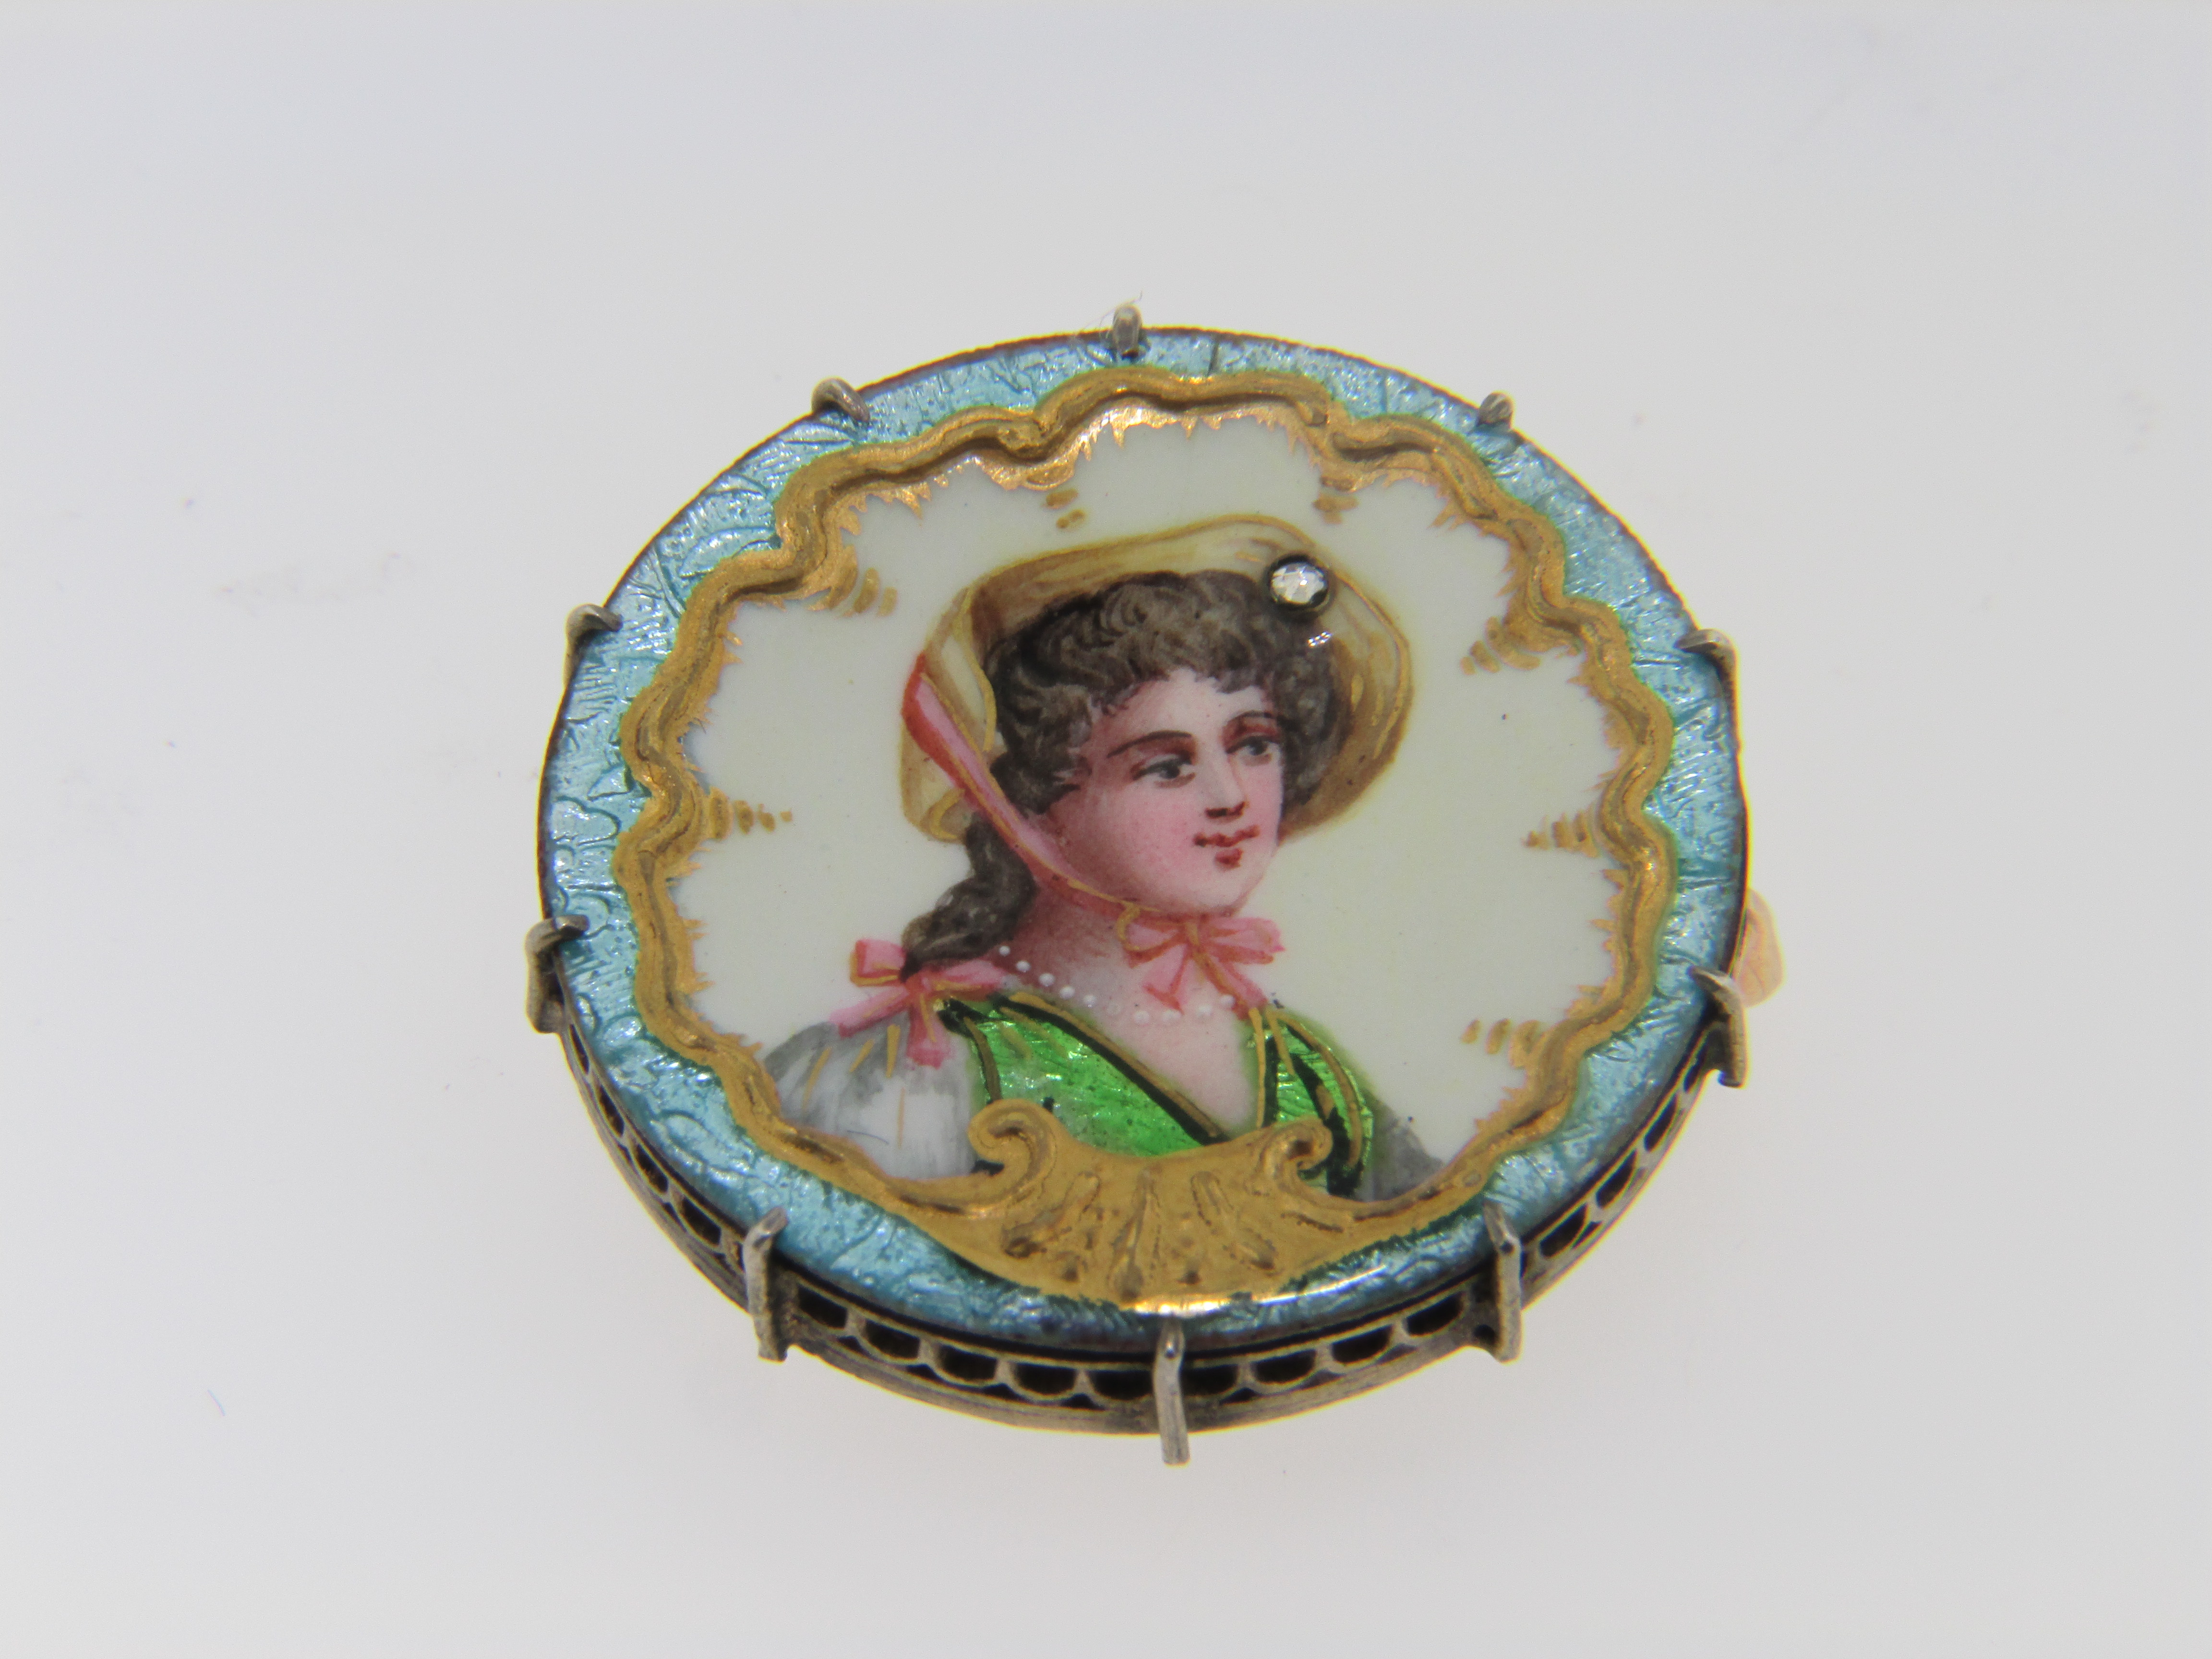 Vintage Victorian Hand Painted Enamel Circle Brooch/Pendant with Rose Cut Diamond Accent